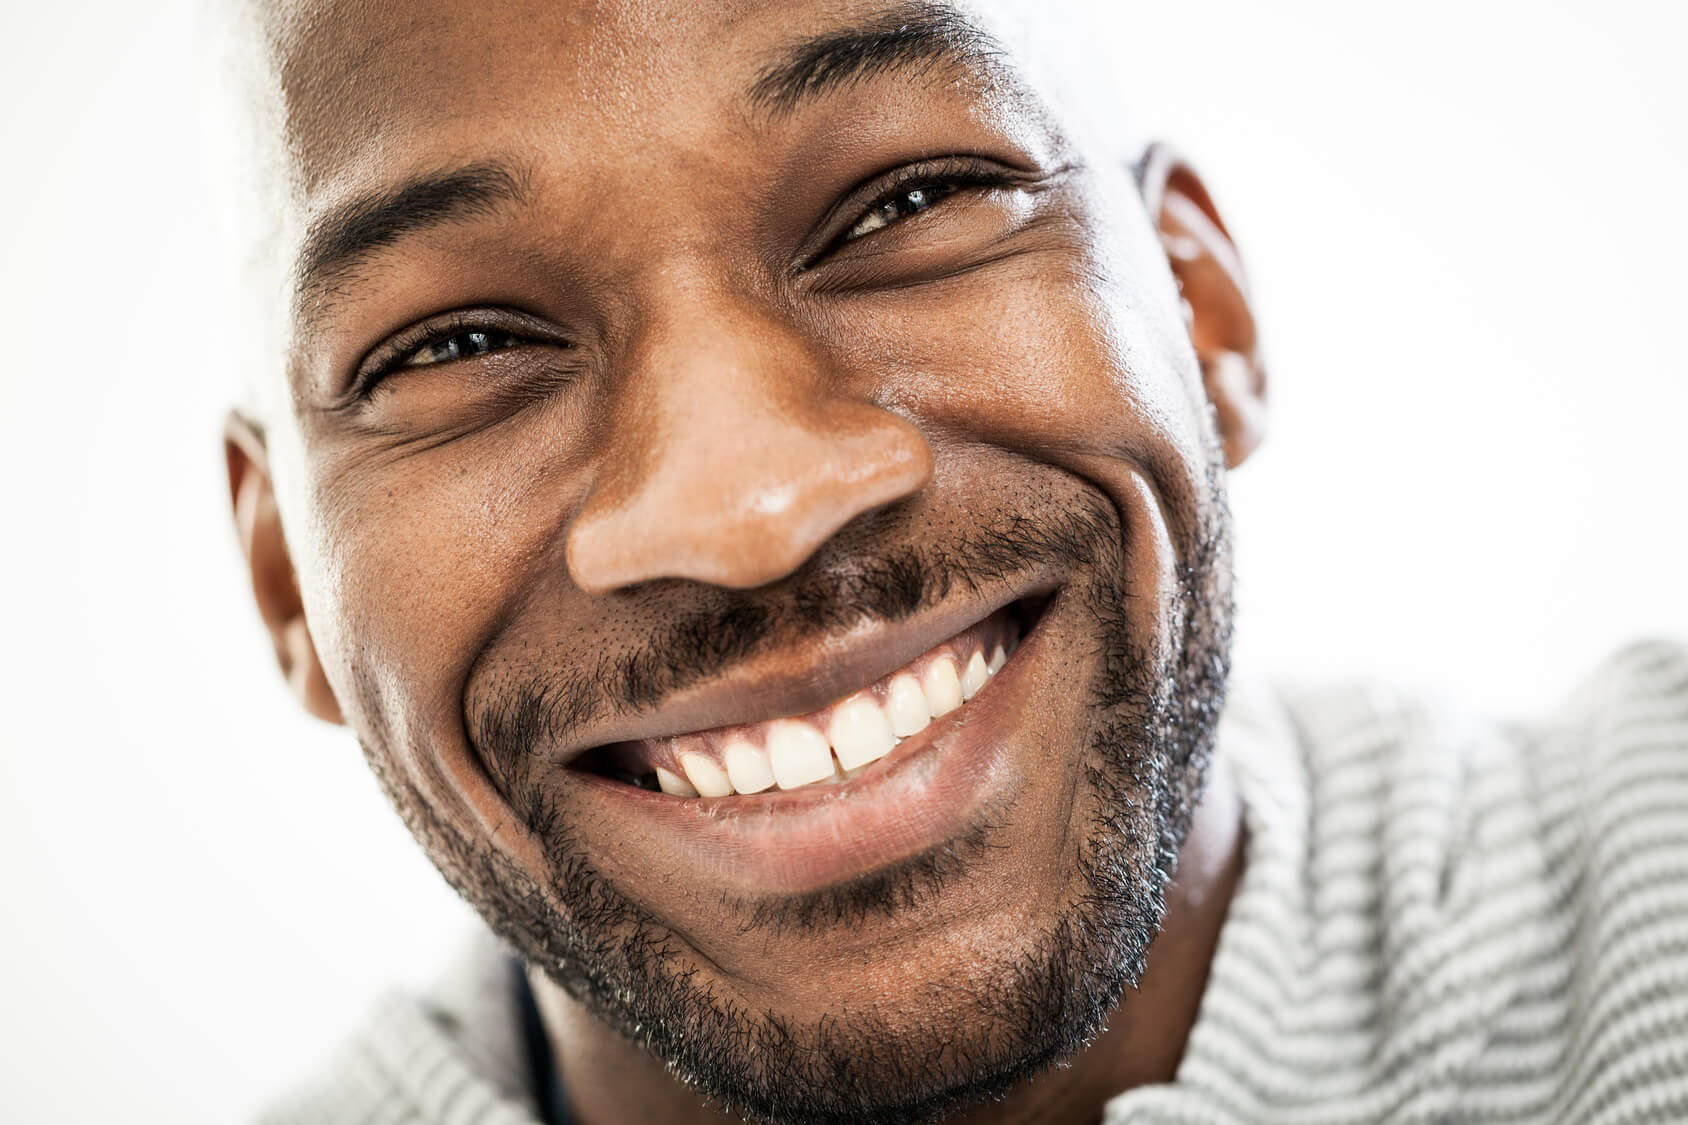 Man with an attractive smile after Six Month Smiles